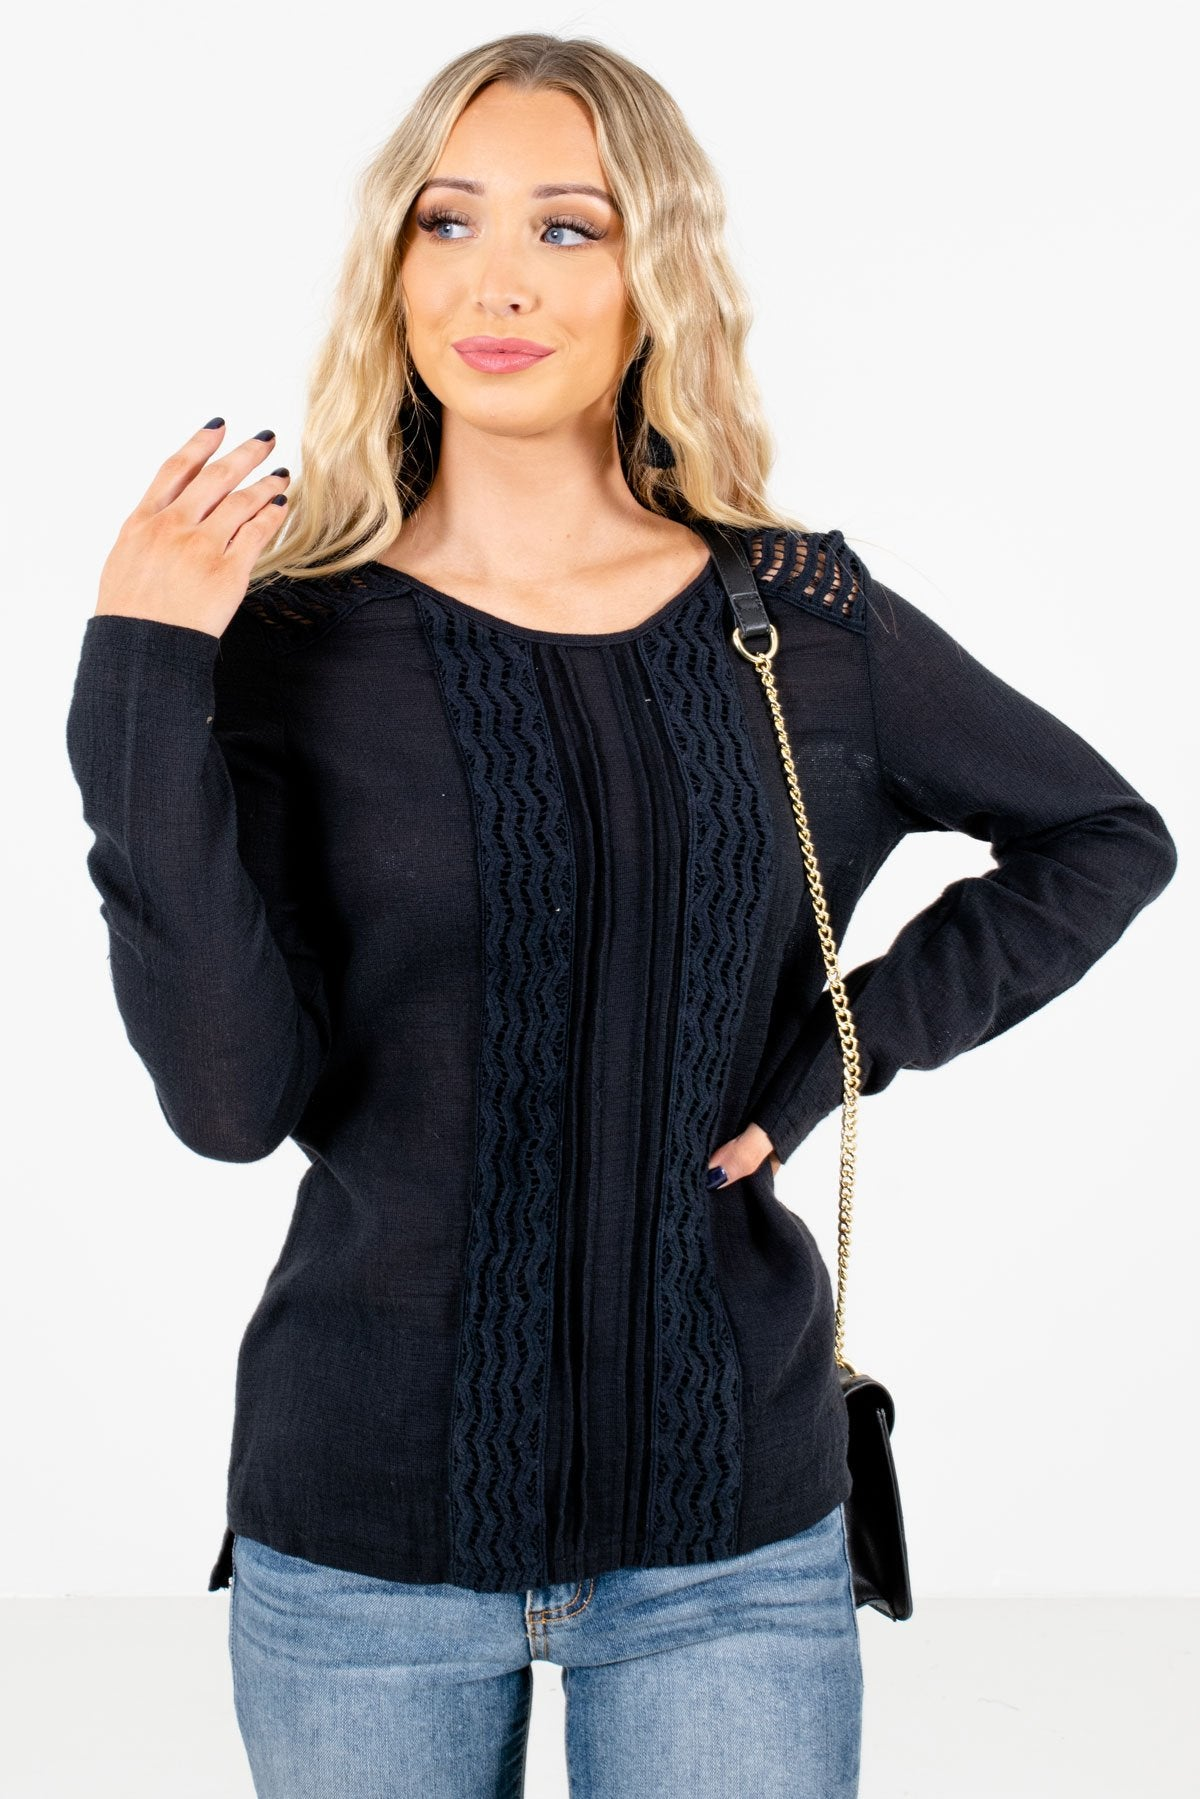 Black Crochet Lace Detailed Boutique Tops for Women